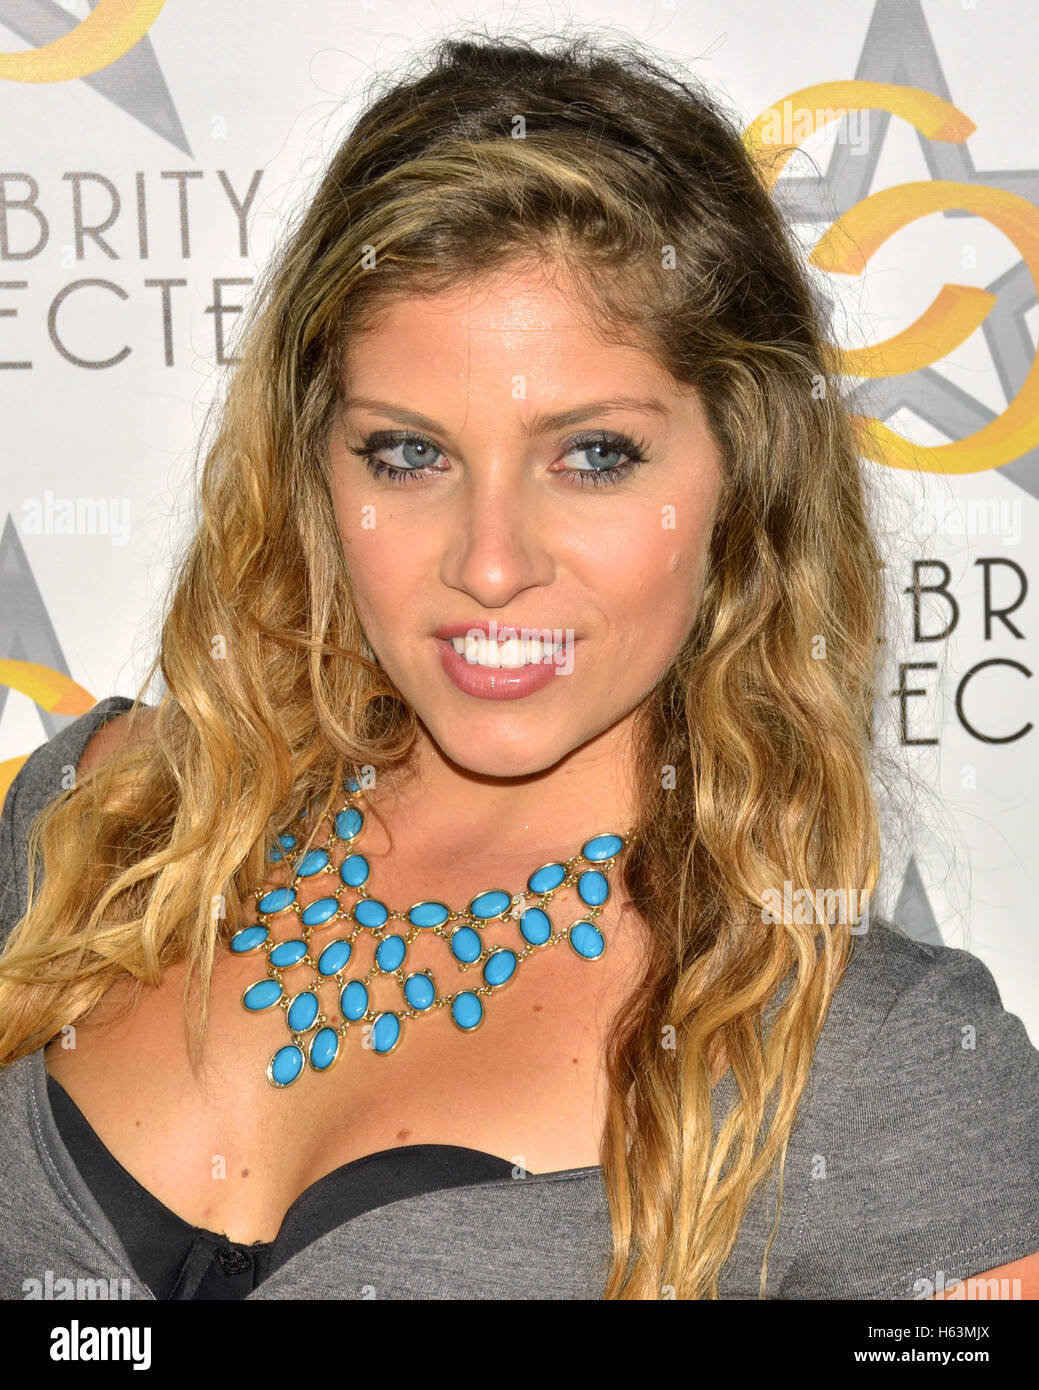 brittany baldi birthdaybrittany baldi mtv, brittany baldi instagram, brittany baldi real world, brittany baldi age, brittany baldi height, brittany baldi birthday, brittany baldi are you the one, brittany baldi wiki, brittany baldi, brittany baldi twitter, brittany baldi ted, brittany baldi bio, brittany baldi and ryan malaty, brittany baldi snapchat, brittany baldi hot, brittany baldi boyfriend, brittany baldi model, brittany baldi the challenge, brittany baldi feet, brittany baldi and adam kuhn